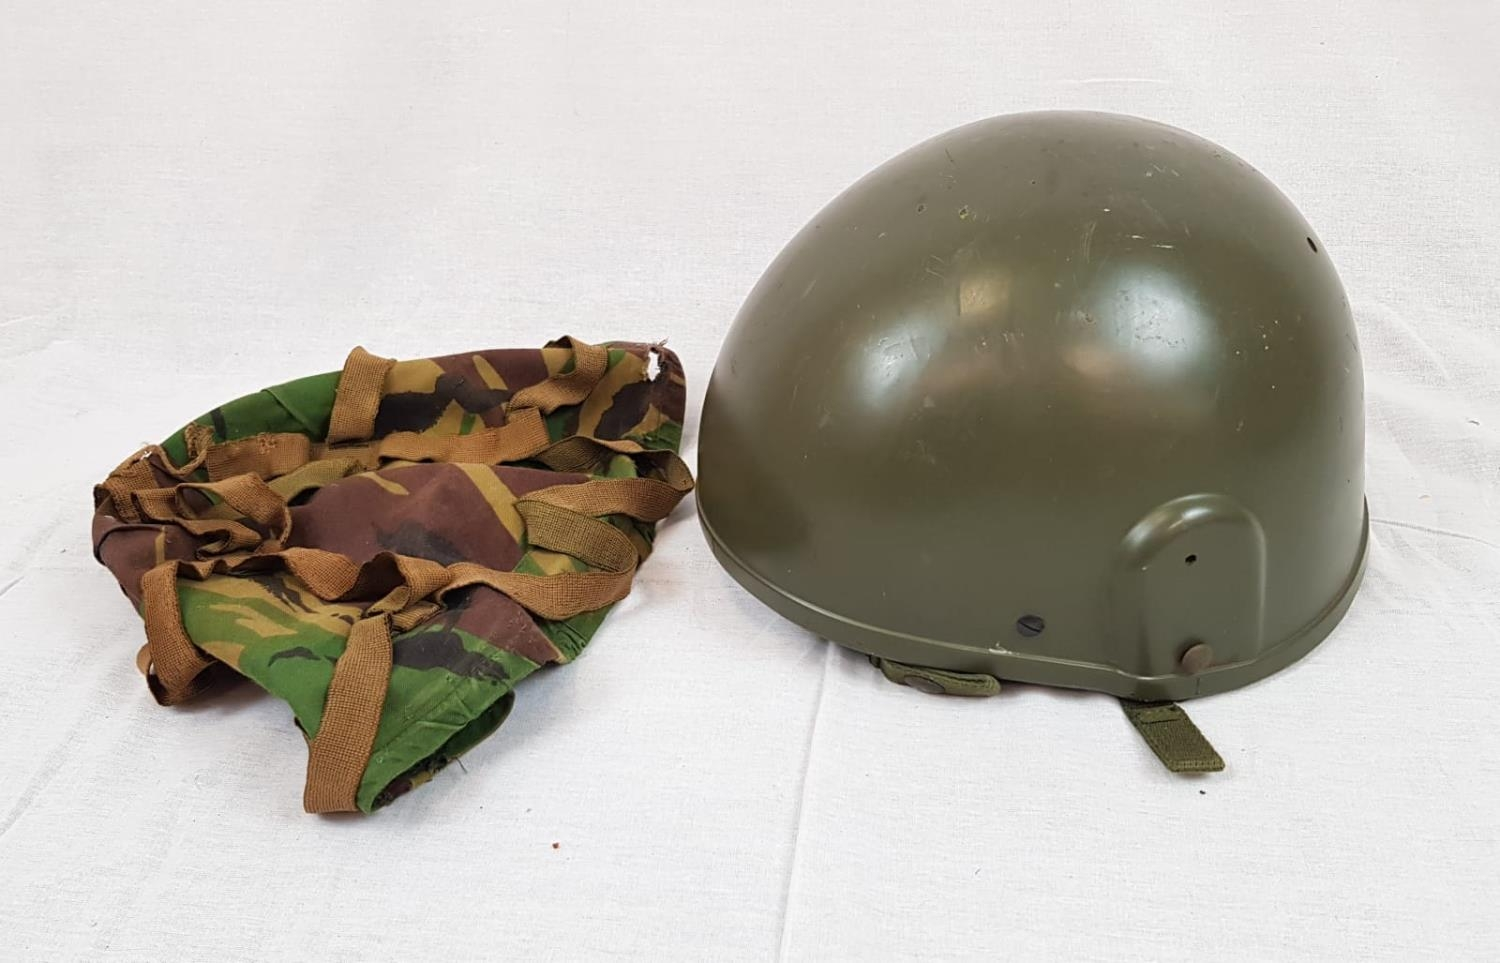 Military Issue Ballistic HELMET previously issued to Pte Cargill, 4 Platoon (as marked on the